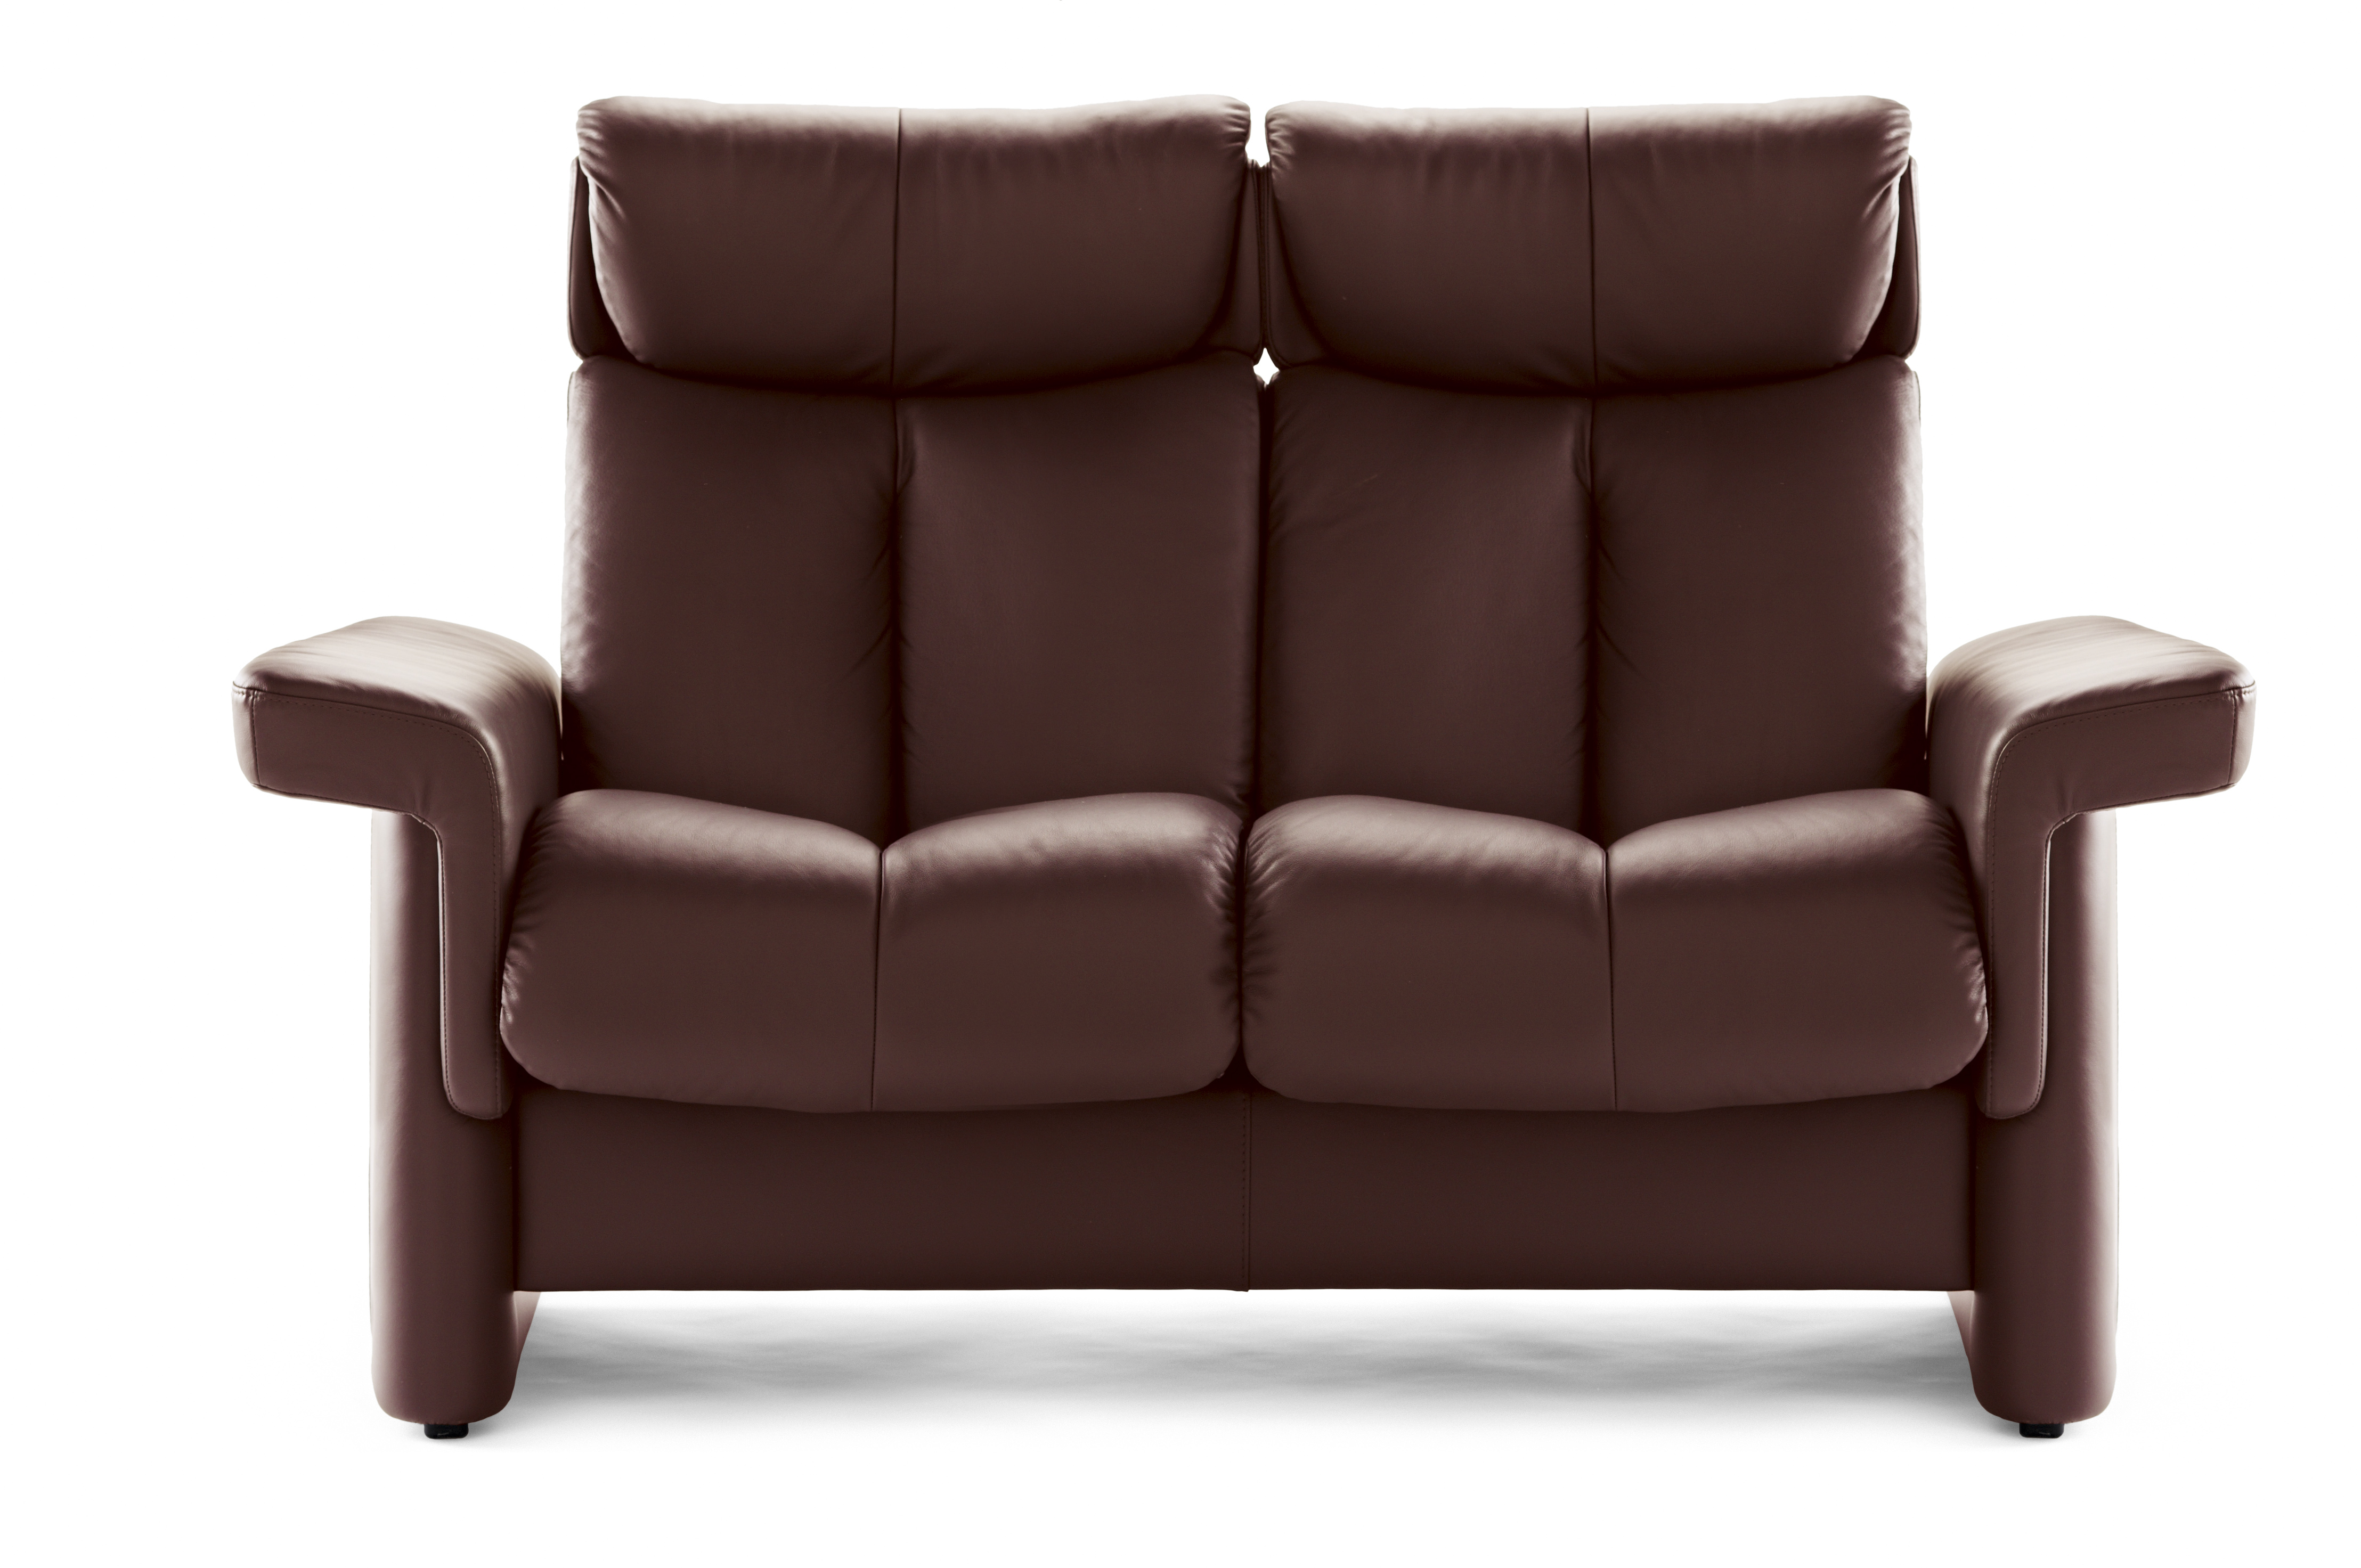 New Arrivals and Departures Stressless and Ekornes in 2015